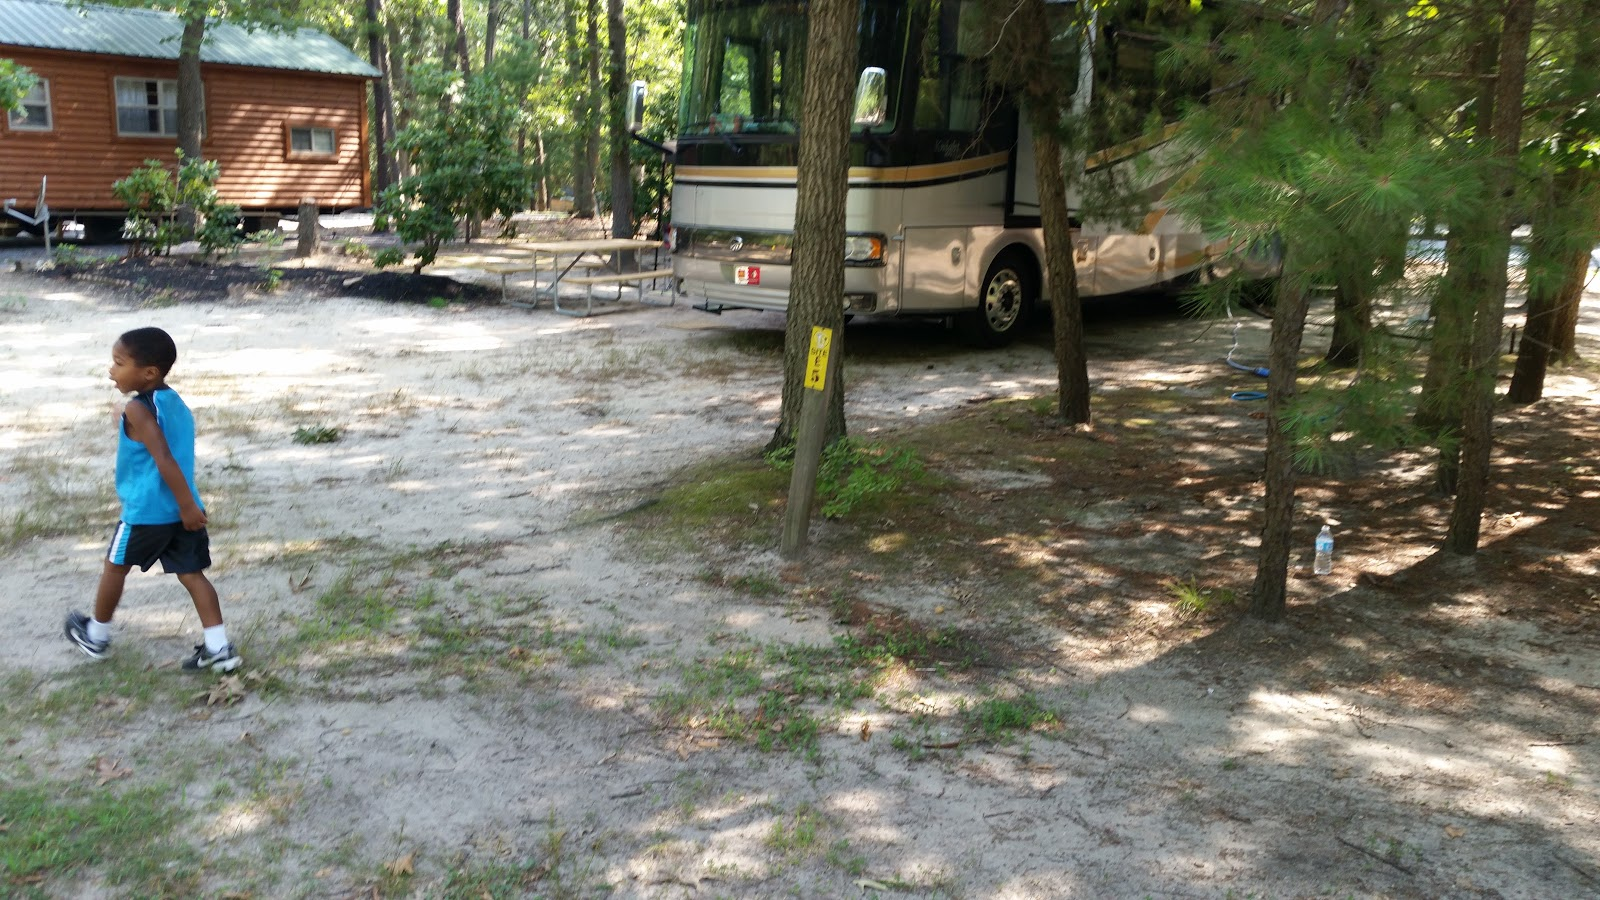 Young boy walks in campground by Class A motorhome